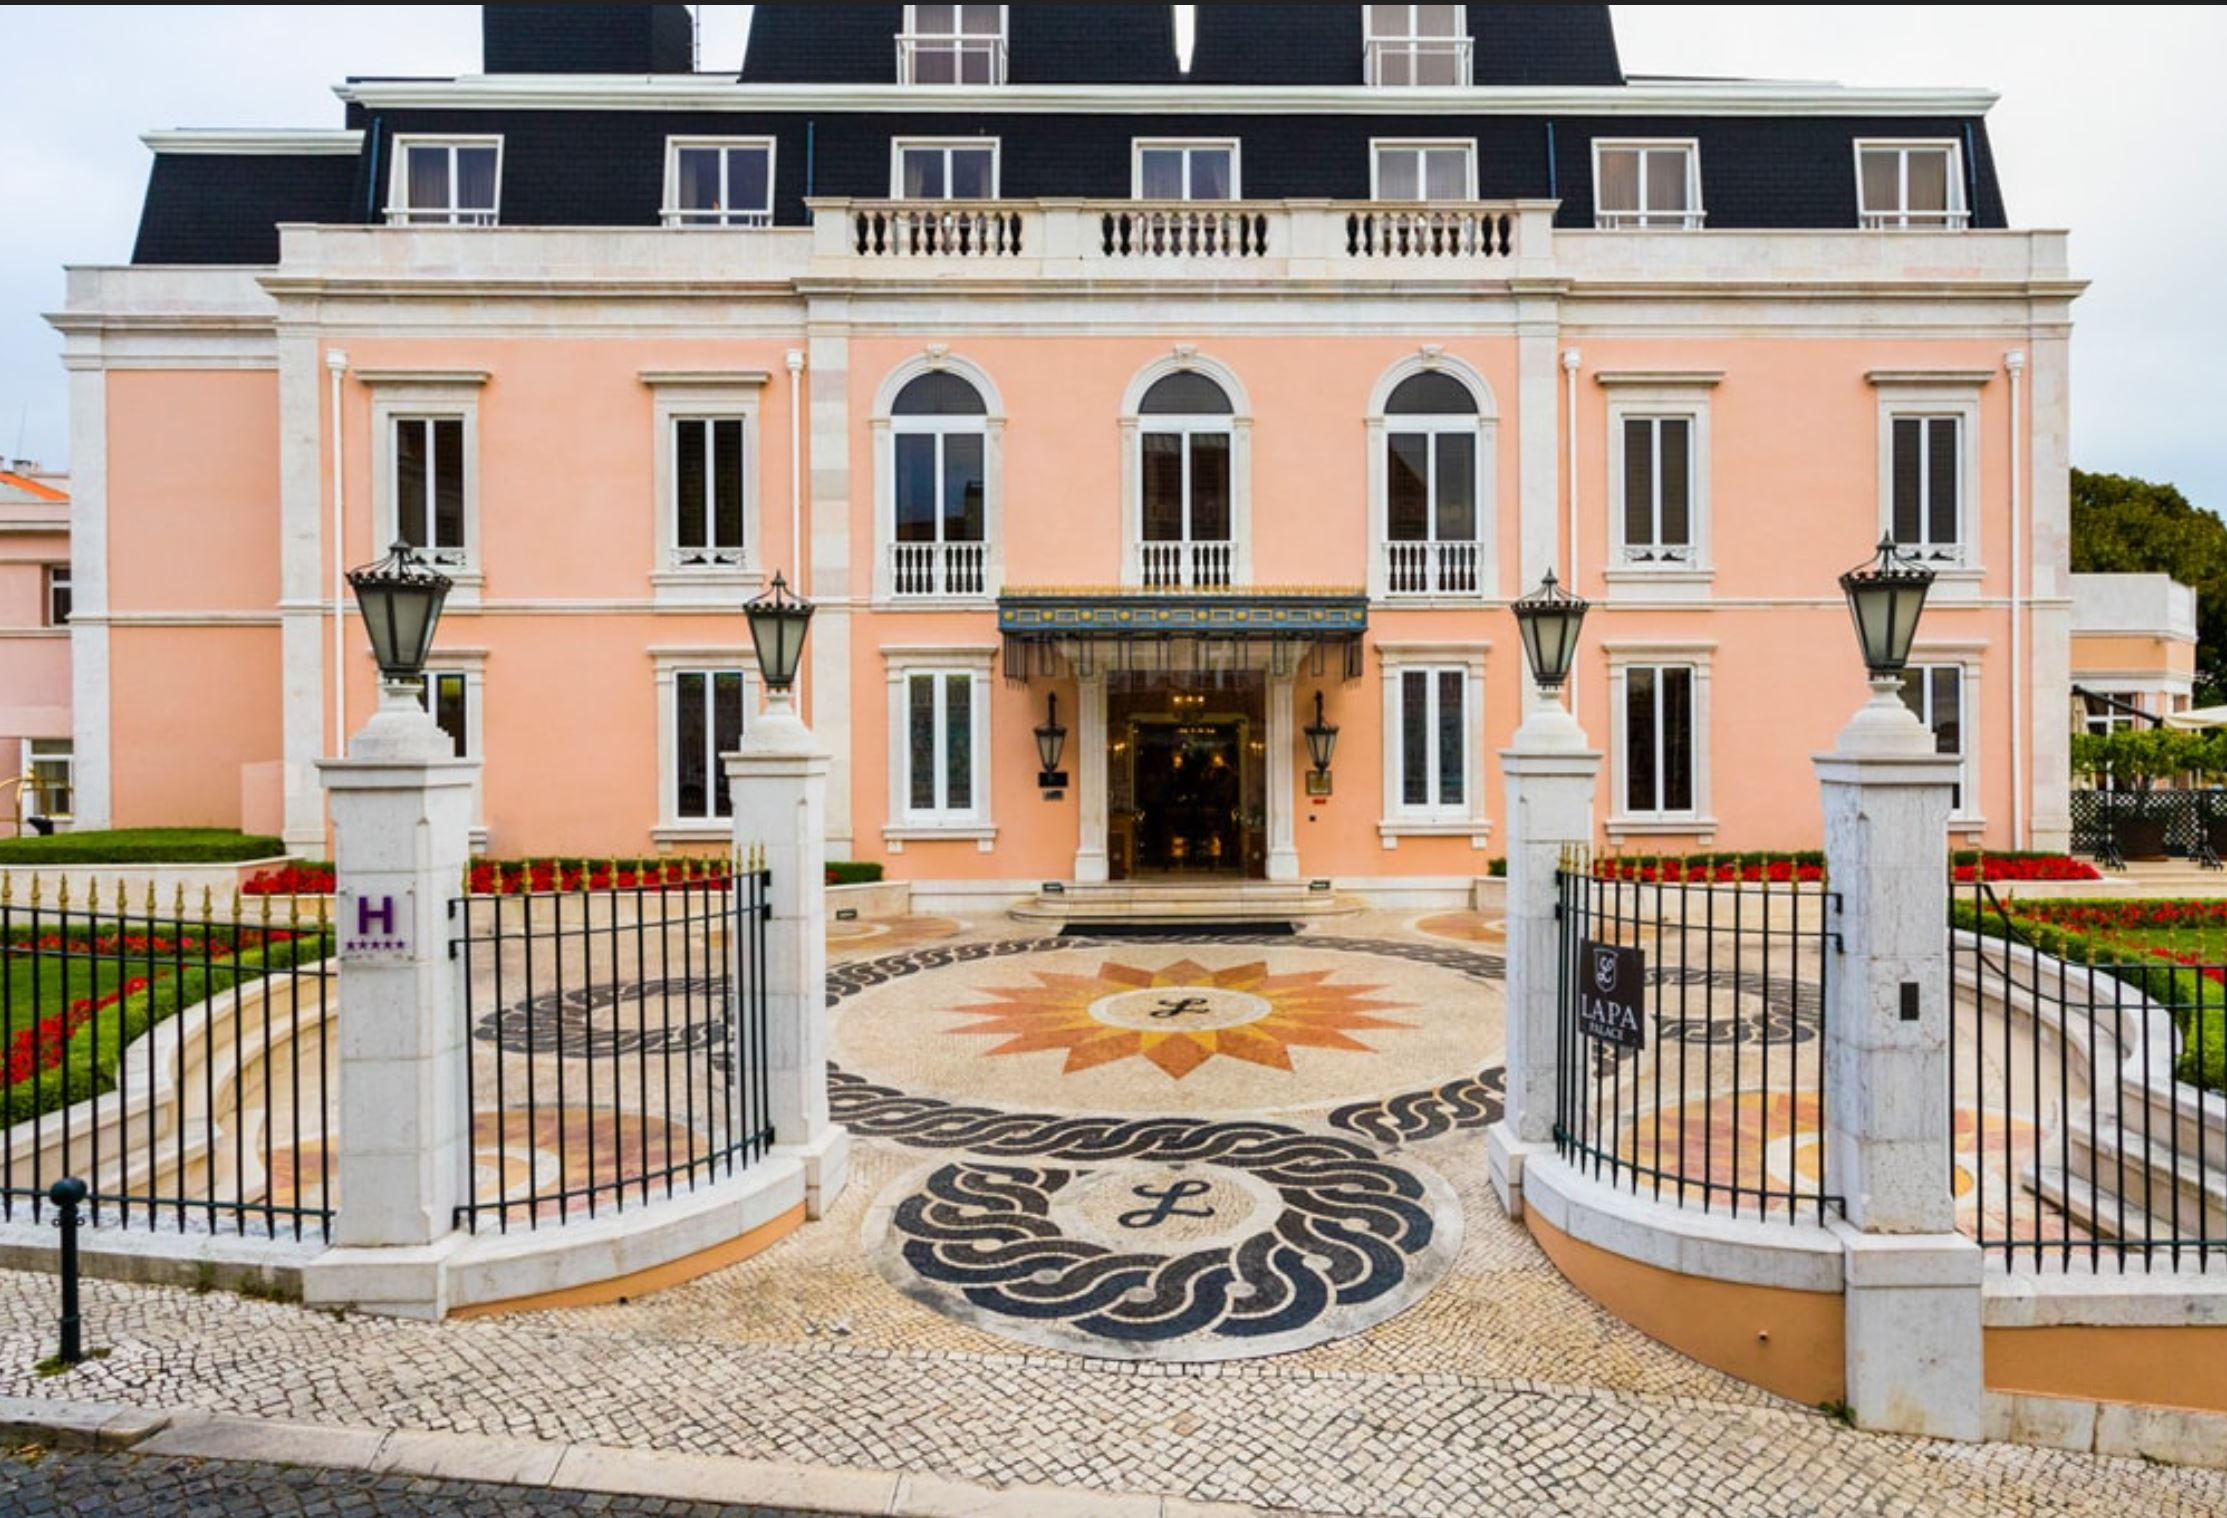 Olissippo Lapa Palace - Portugal Resorts - Best Places to Stay in Portugal